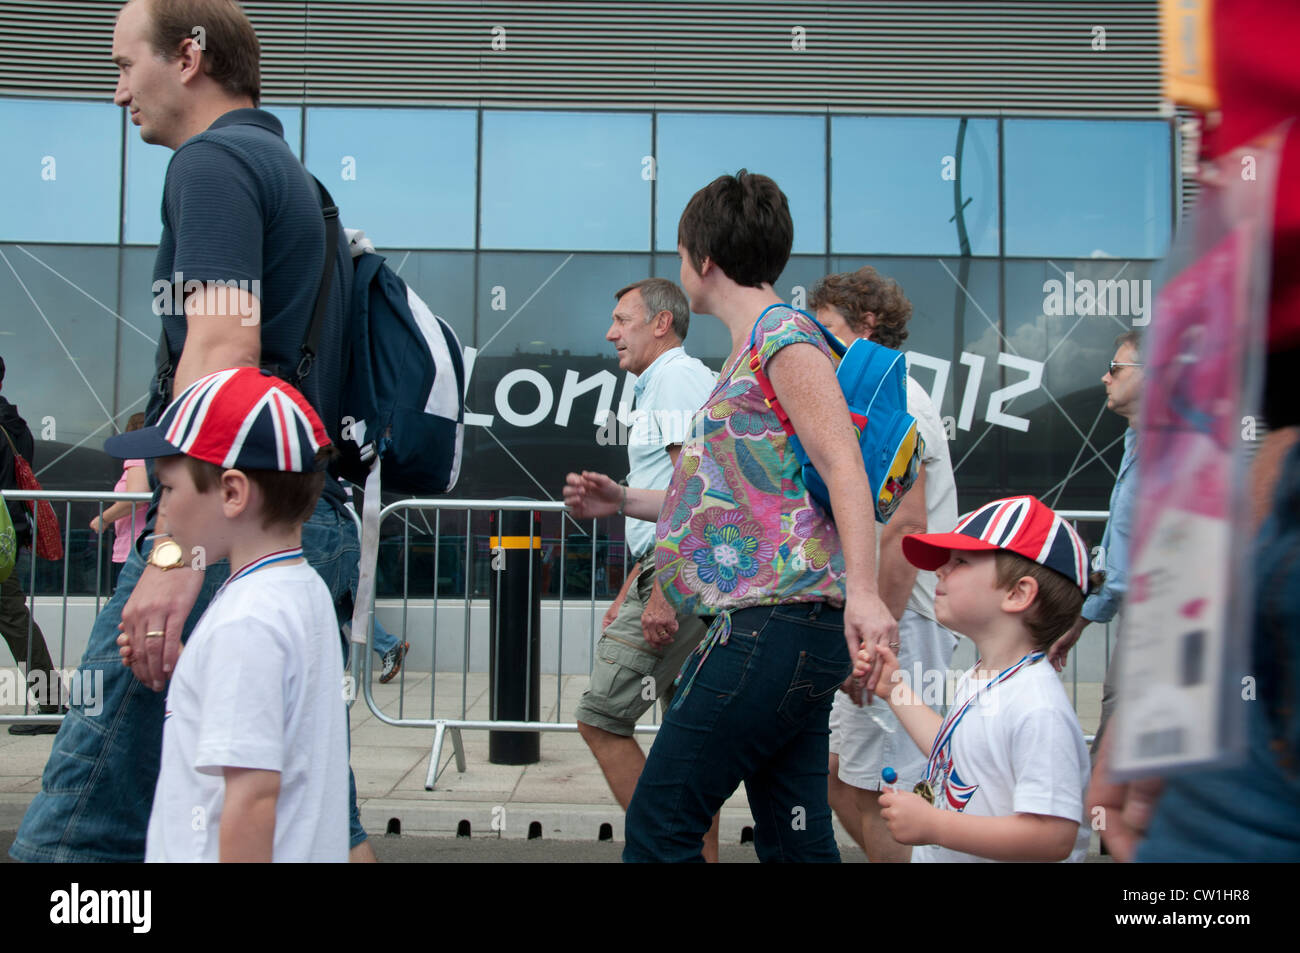 Westfield Shopping Centre, Stratford, entrance to the Olympic Park.  Visitors walk to the arena. - Stock Image